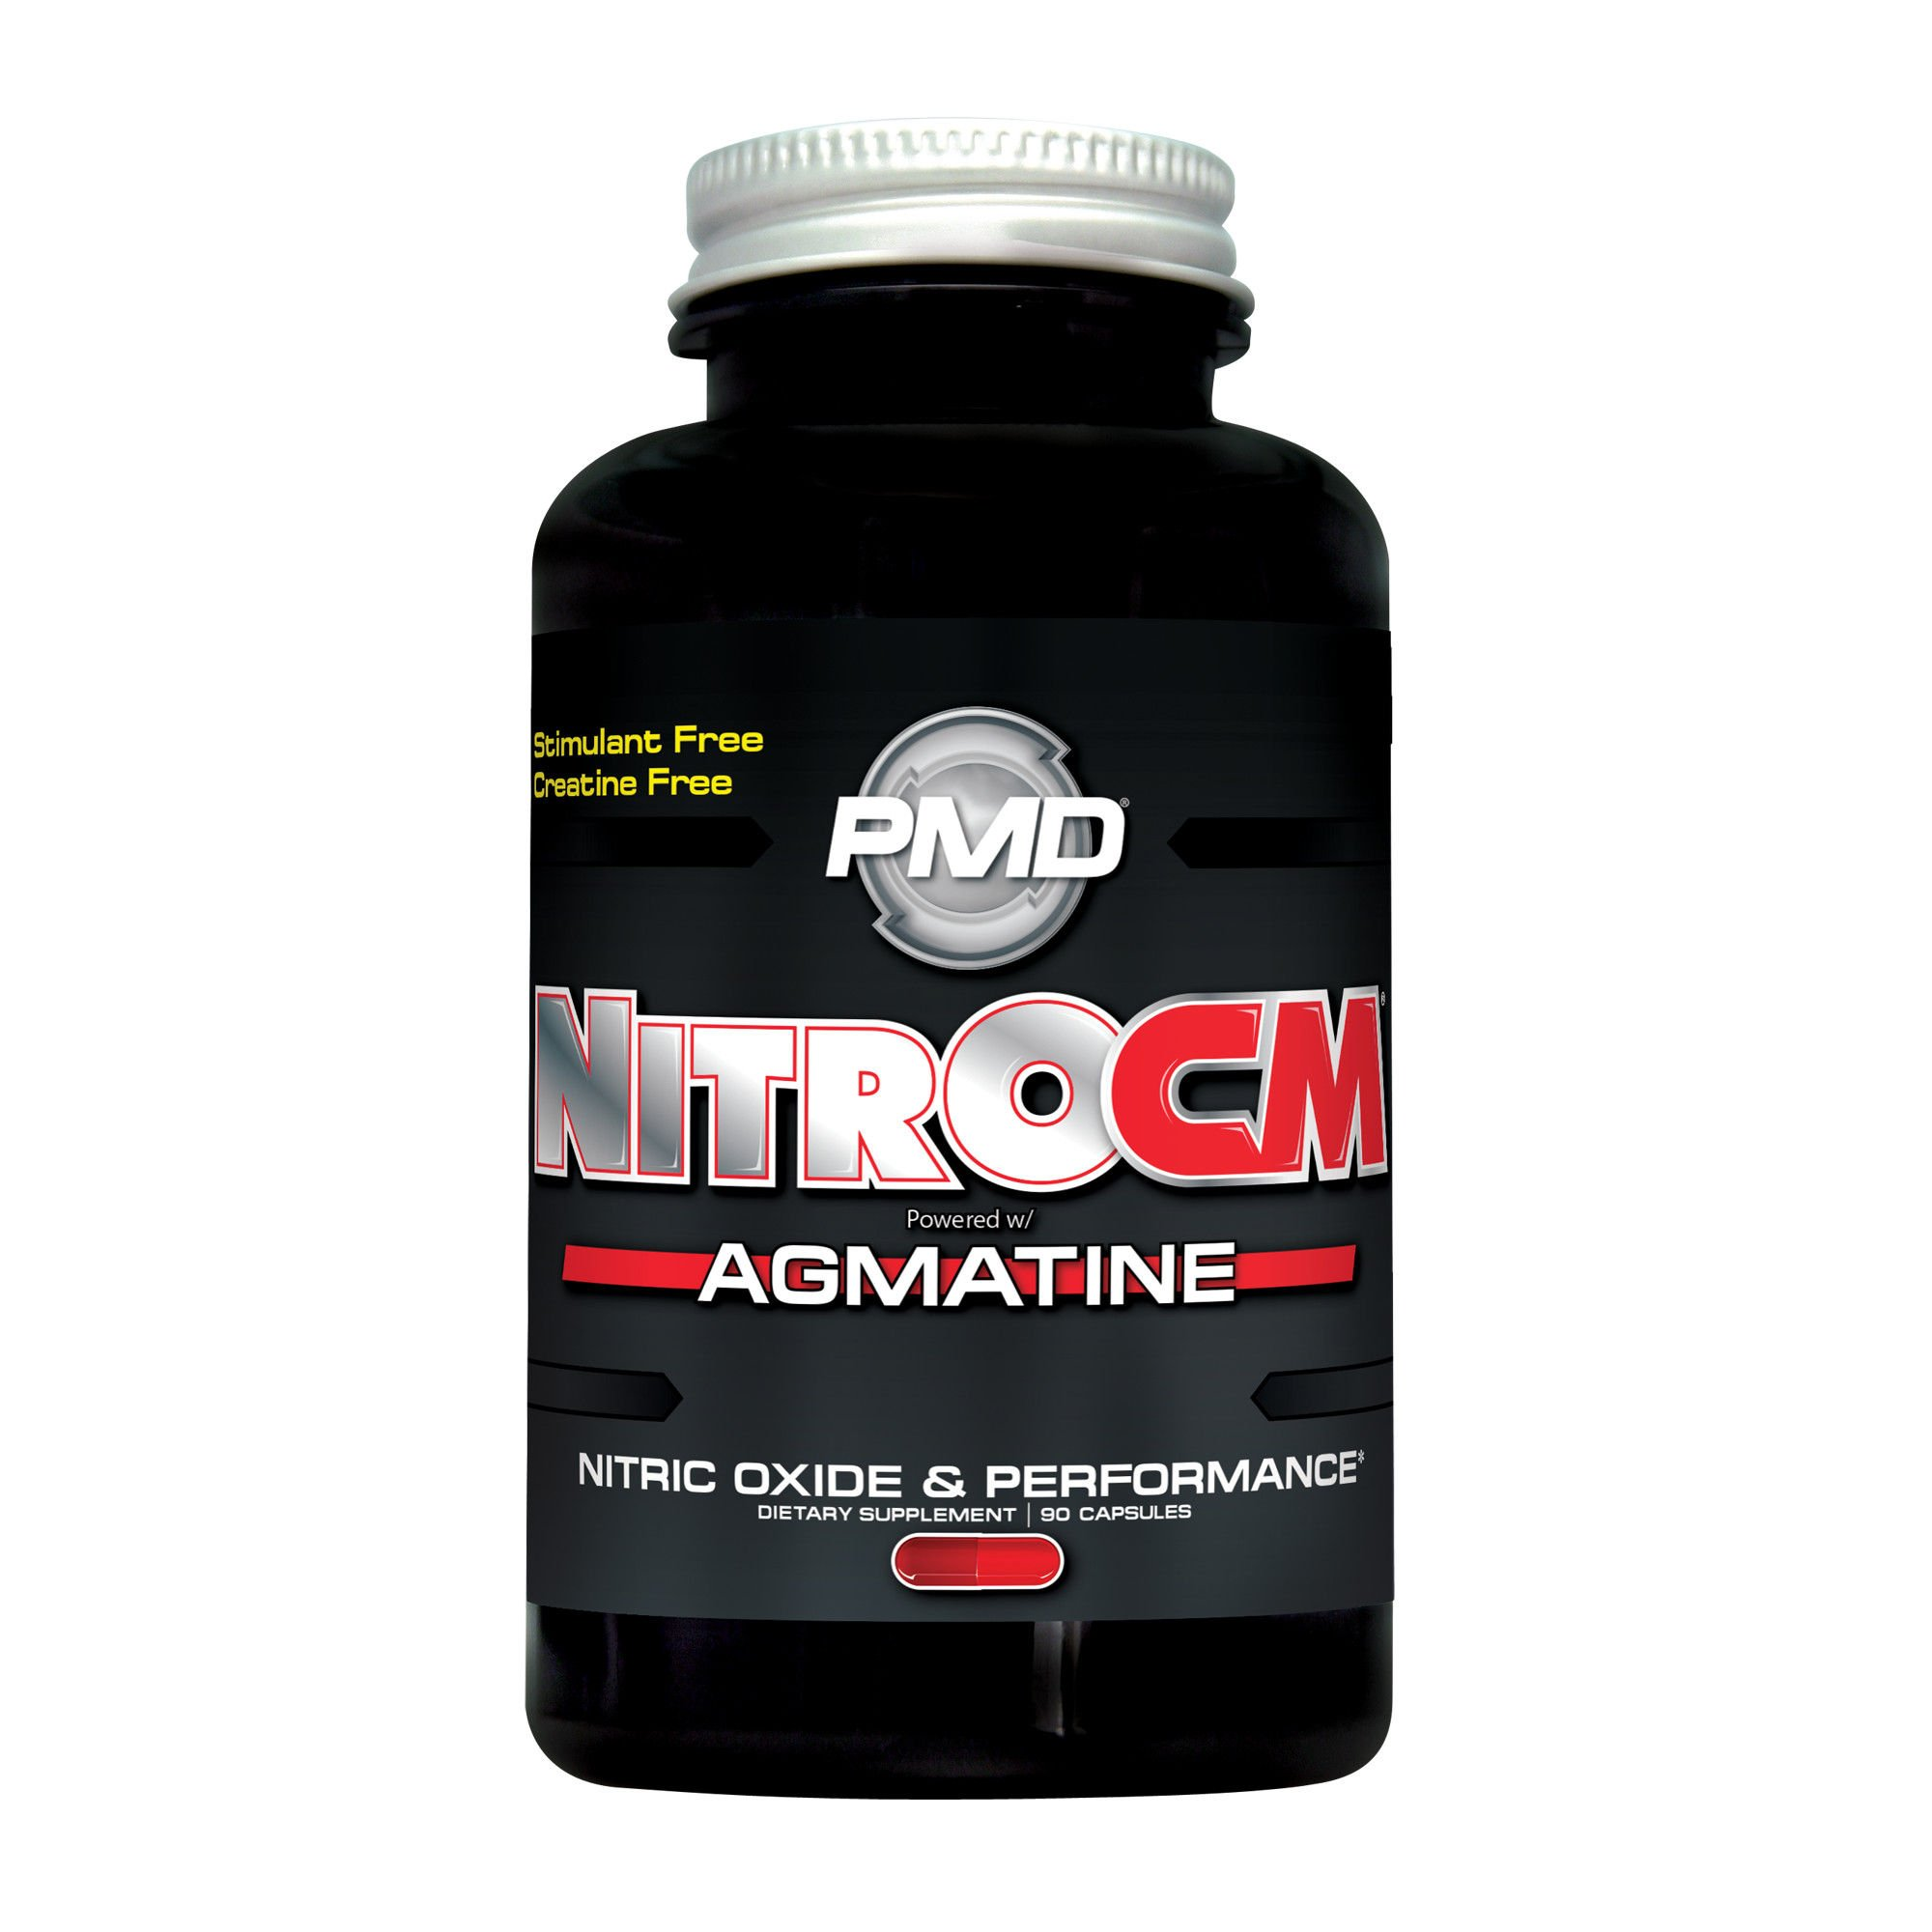 PMD Sports Nitro cm - Nitric Oxide with Agmatine Pre Workout Supplement - Muscle Growth Pre Workout with L Arginine - Endurance Boost for Hardcore Exercise, Training, and Bodybuilding - 90 Capsules